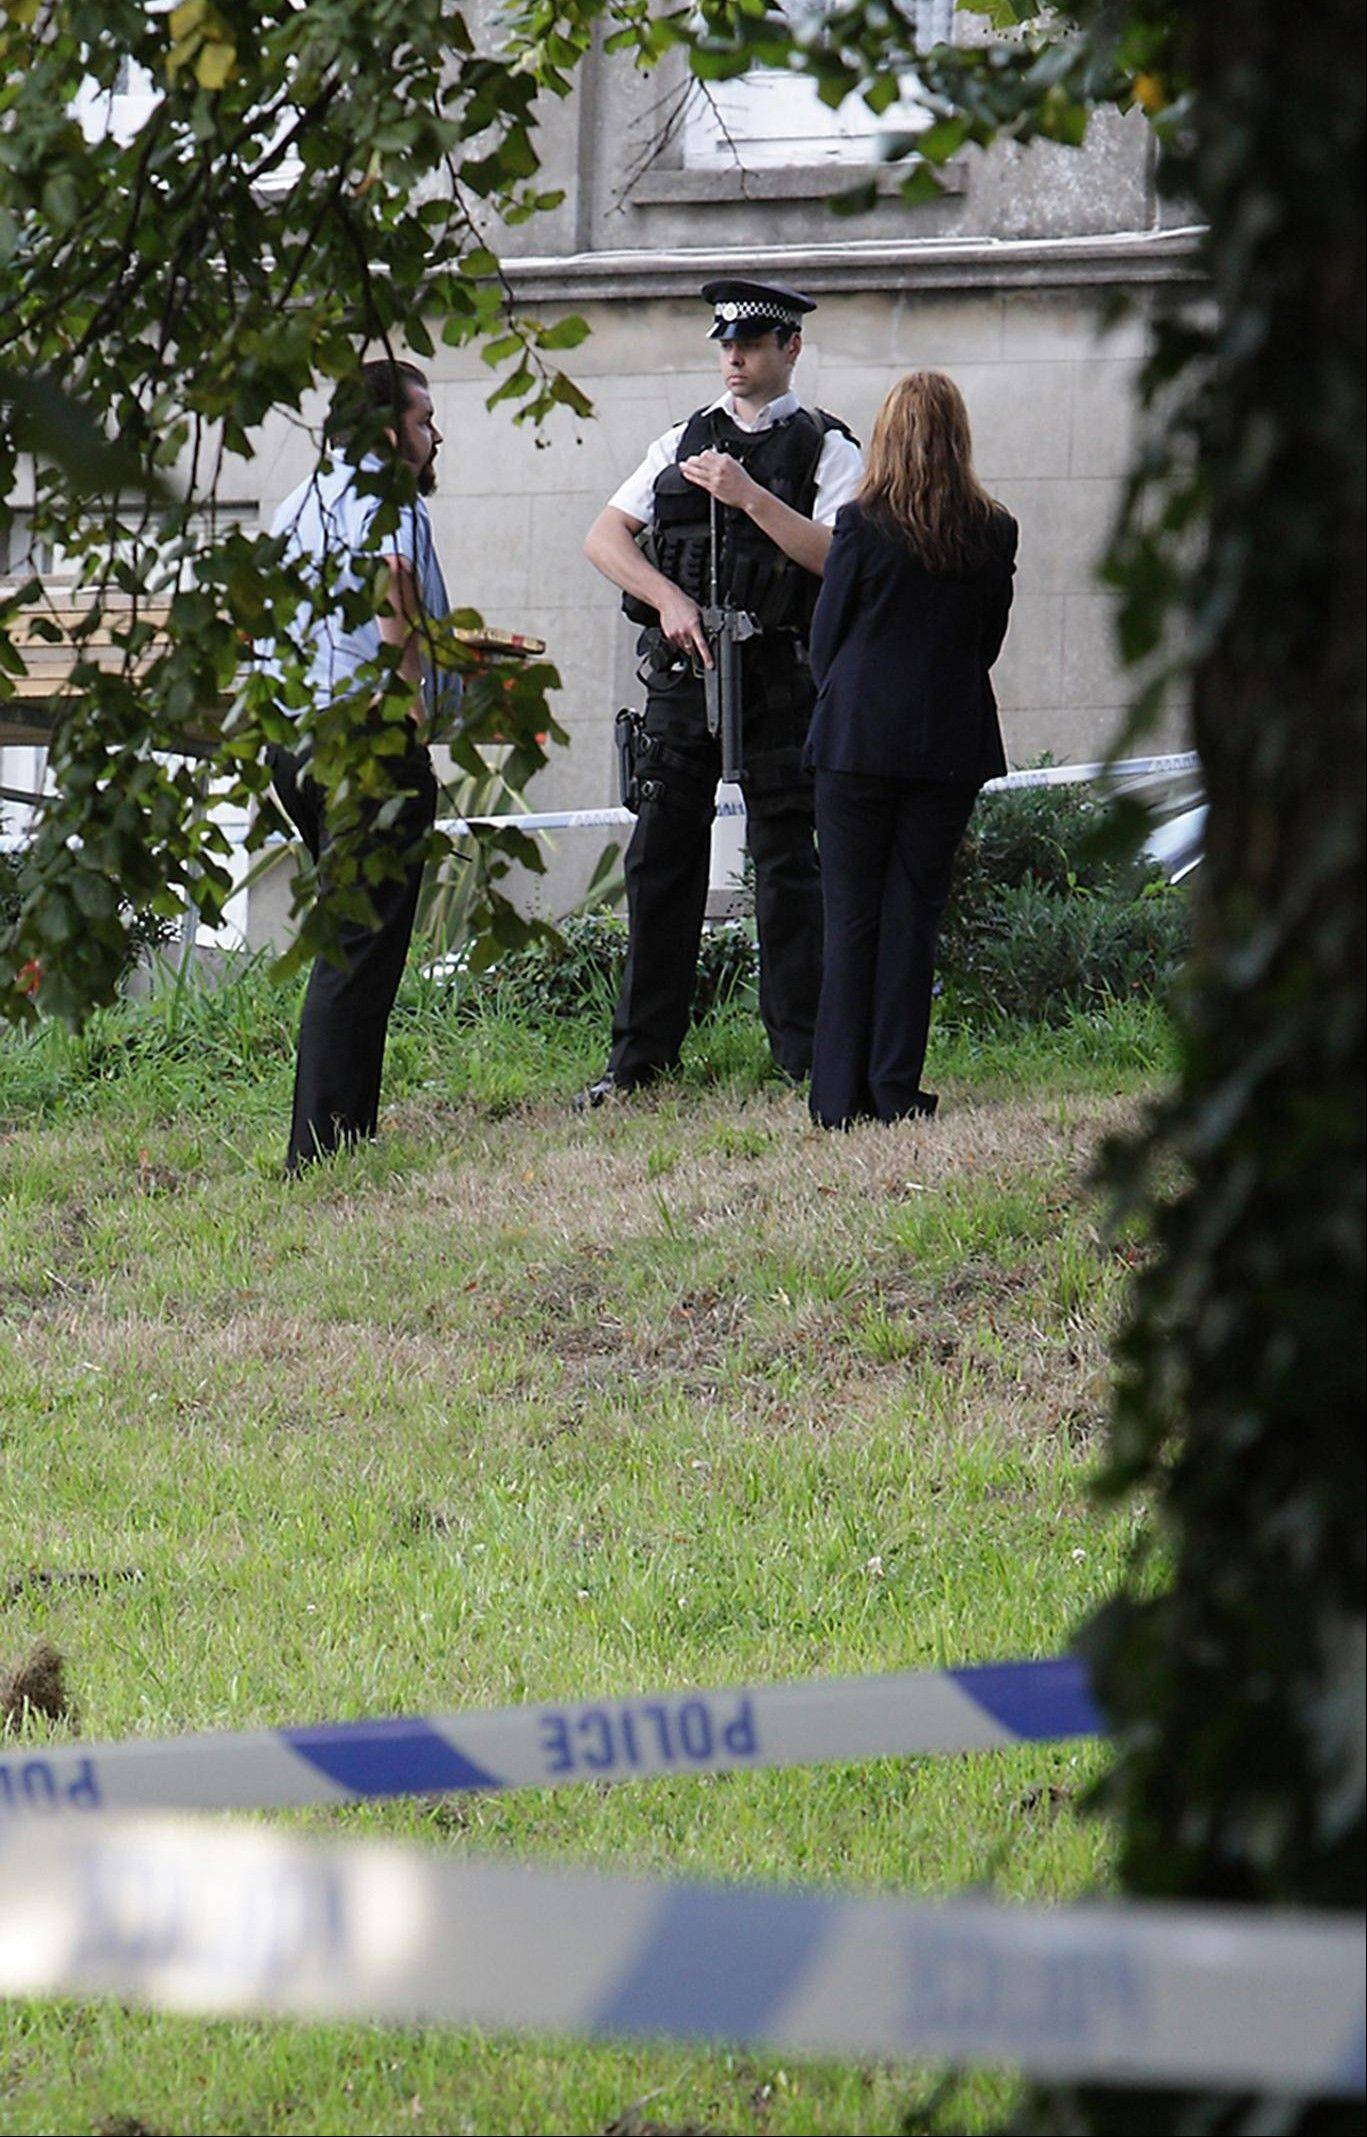 People talk to a British armed policeman attending the scene after six people were killed in a knife attack, Sunday Aug. 14, 2011, in St Helier, Jersey, England. A man is reported to have been arrested Sunday on suspicion of fatally stabbing six people, including two young children, two men and two women, on the British island of Jersey, police said, and unidentified neighbors declared that the incident may have involved members of the same family.